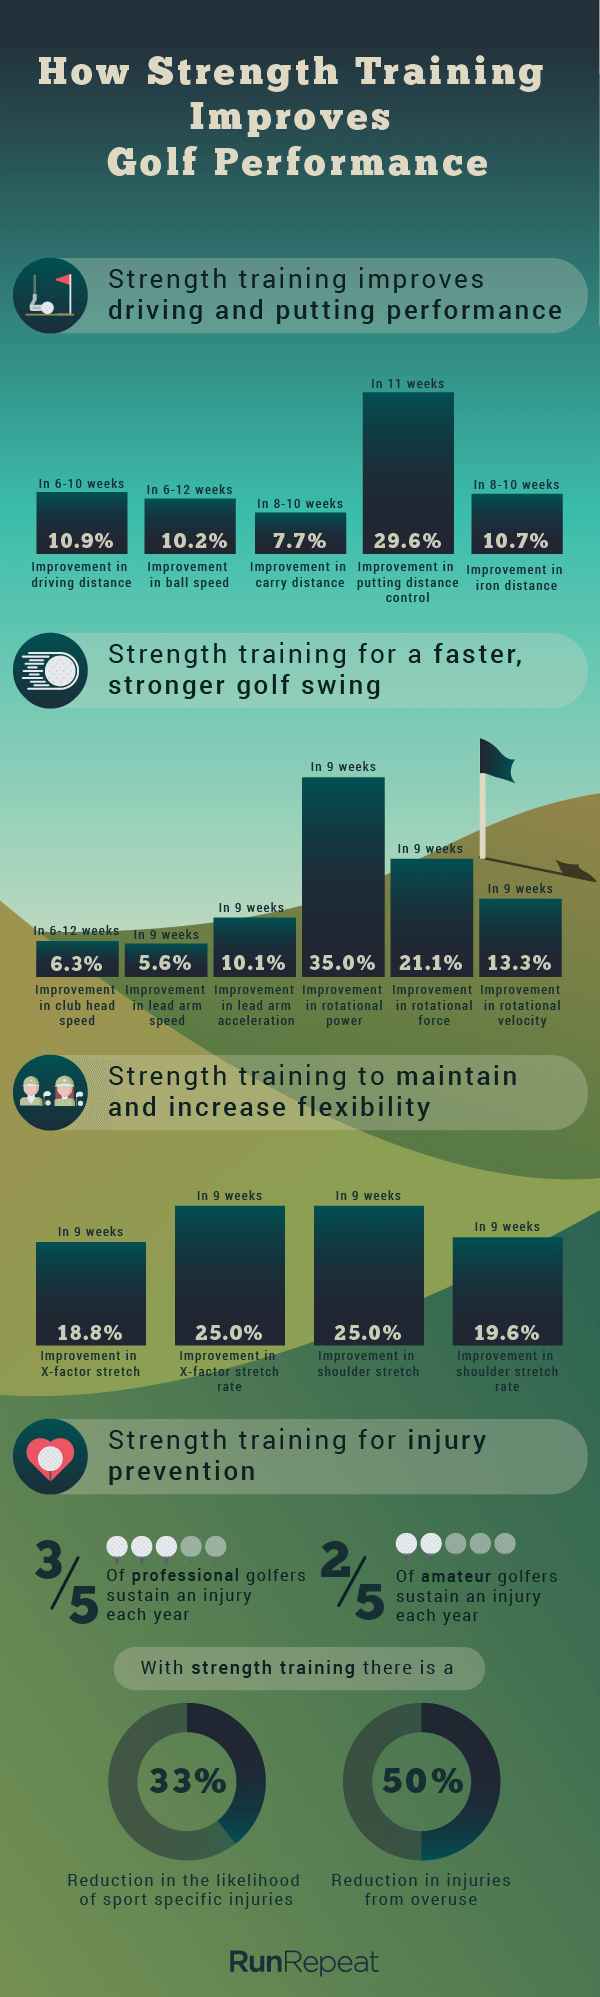 how-strength-training-for-golf-improves-performance